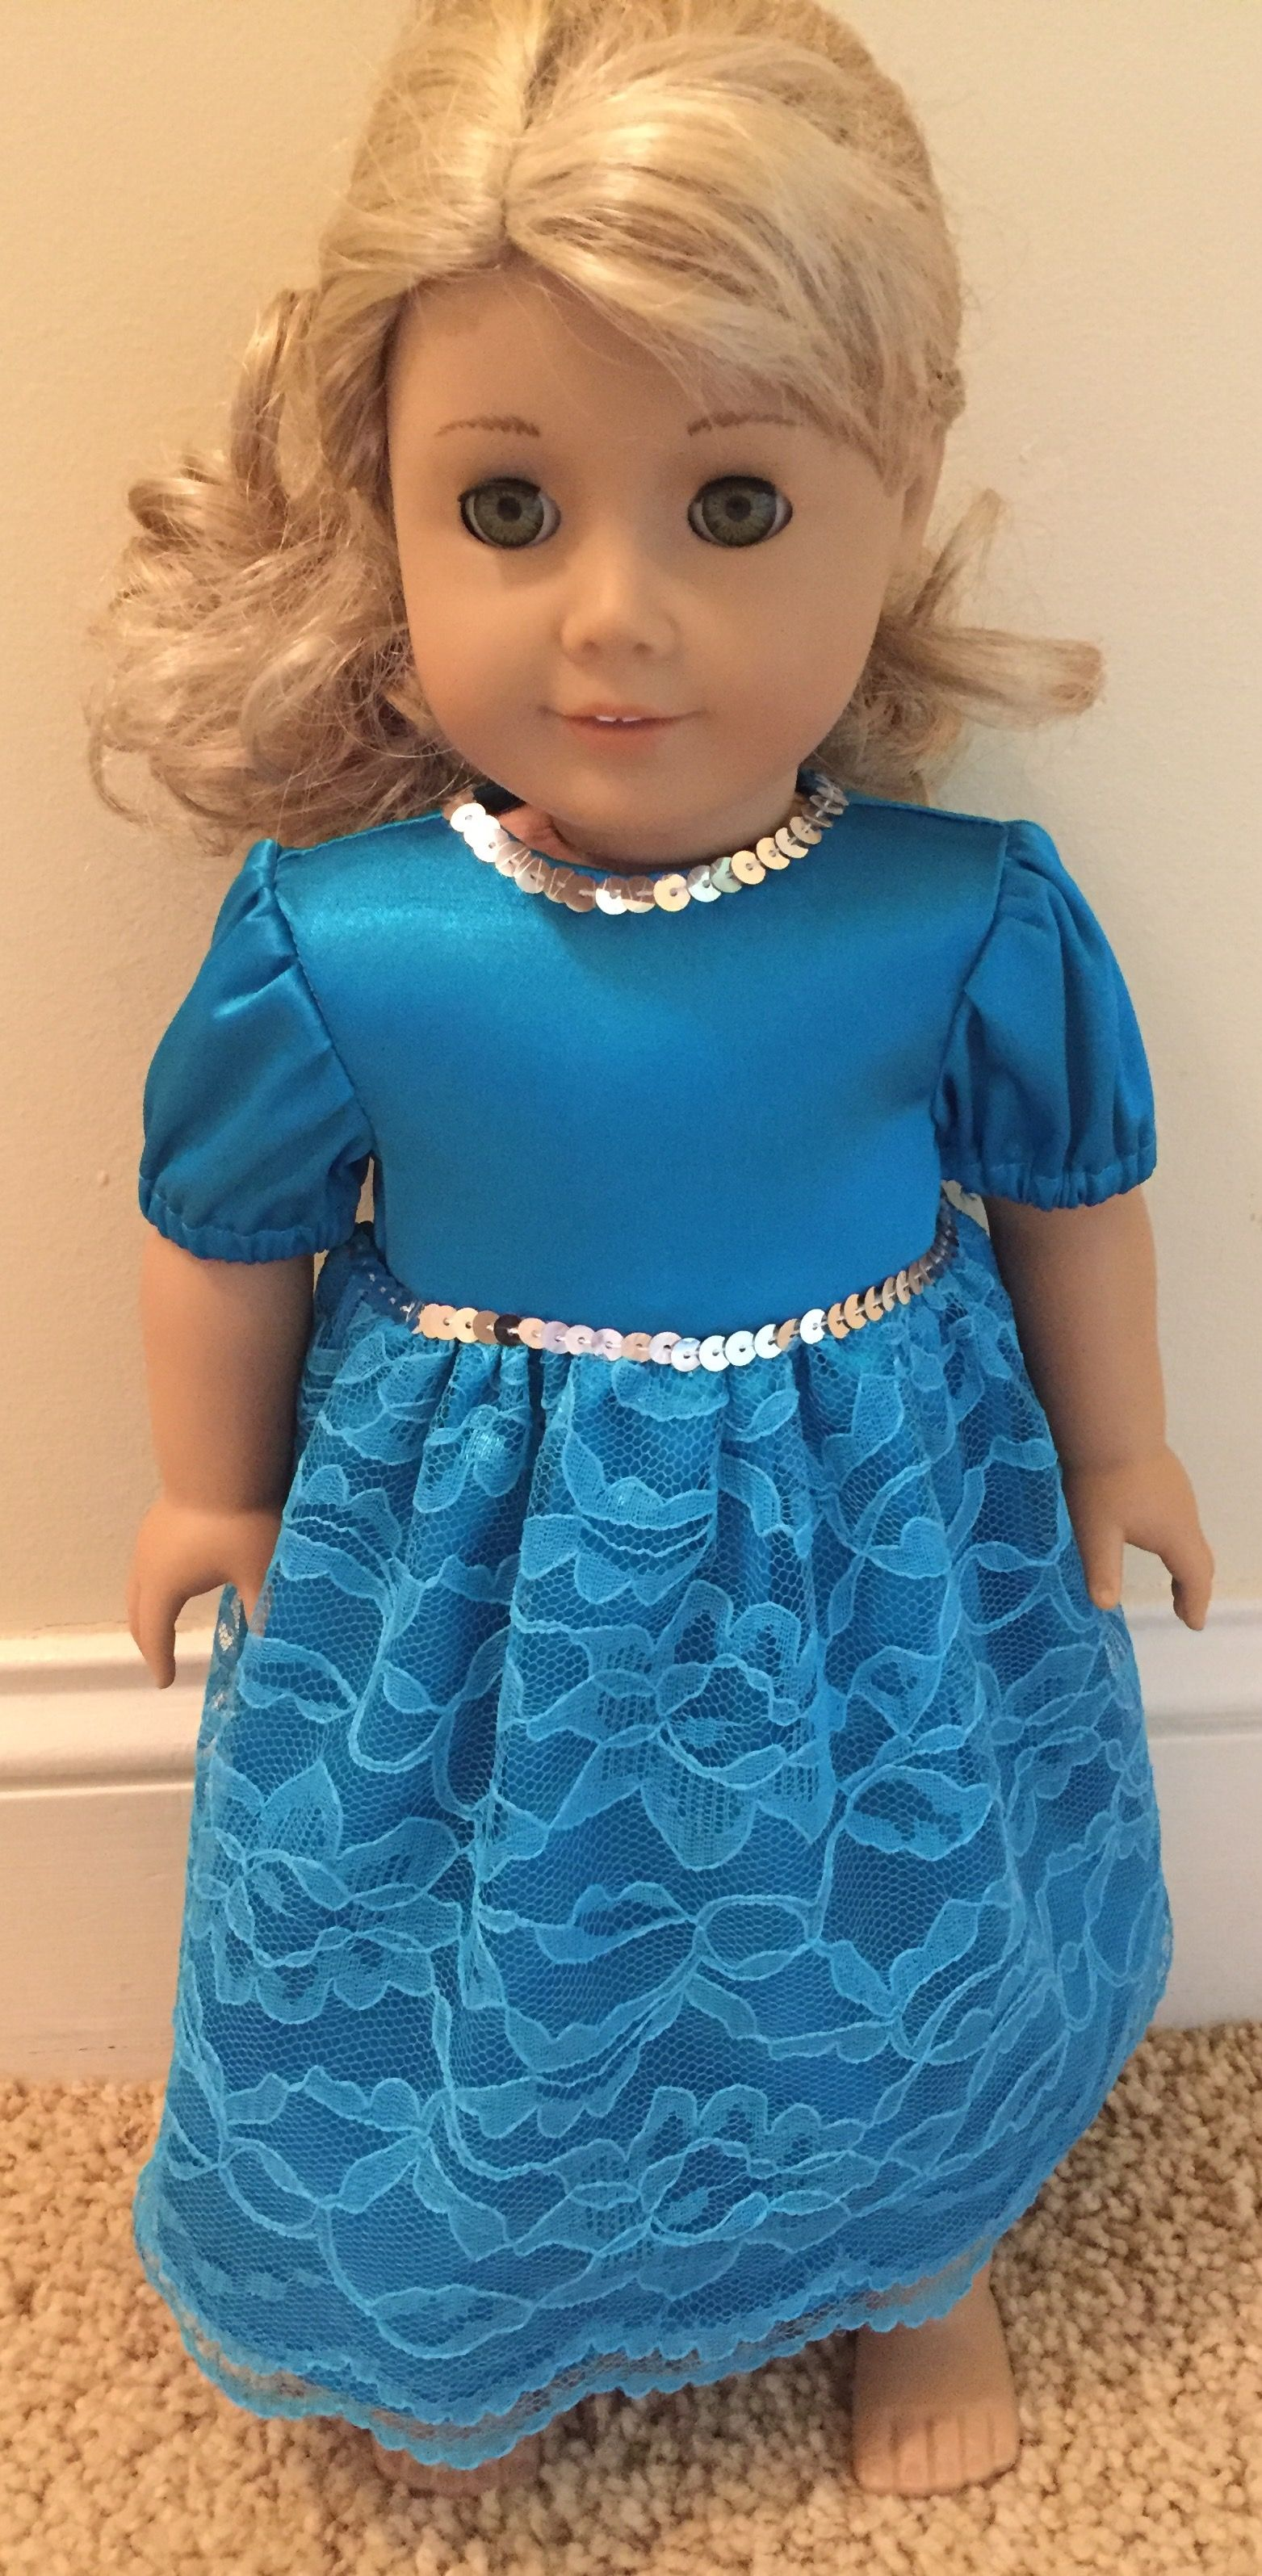 Pin by ONYX on AG - Ball Gowns | Pinterest | Dolls, Ag dolls and ...